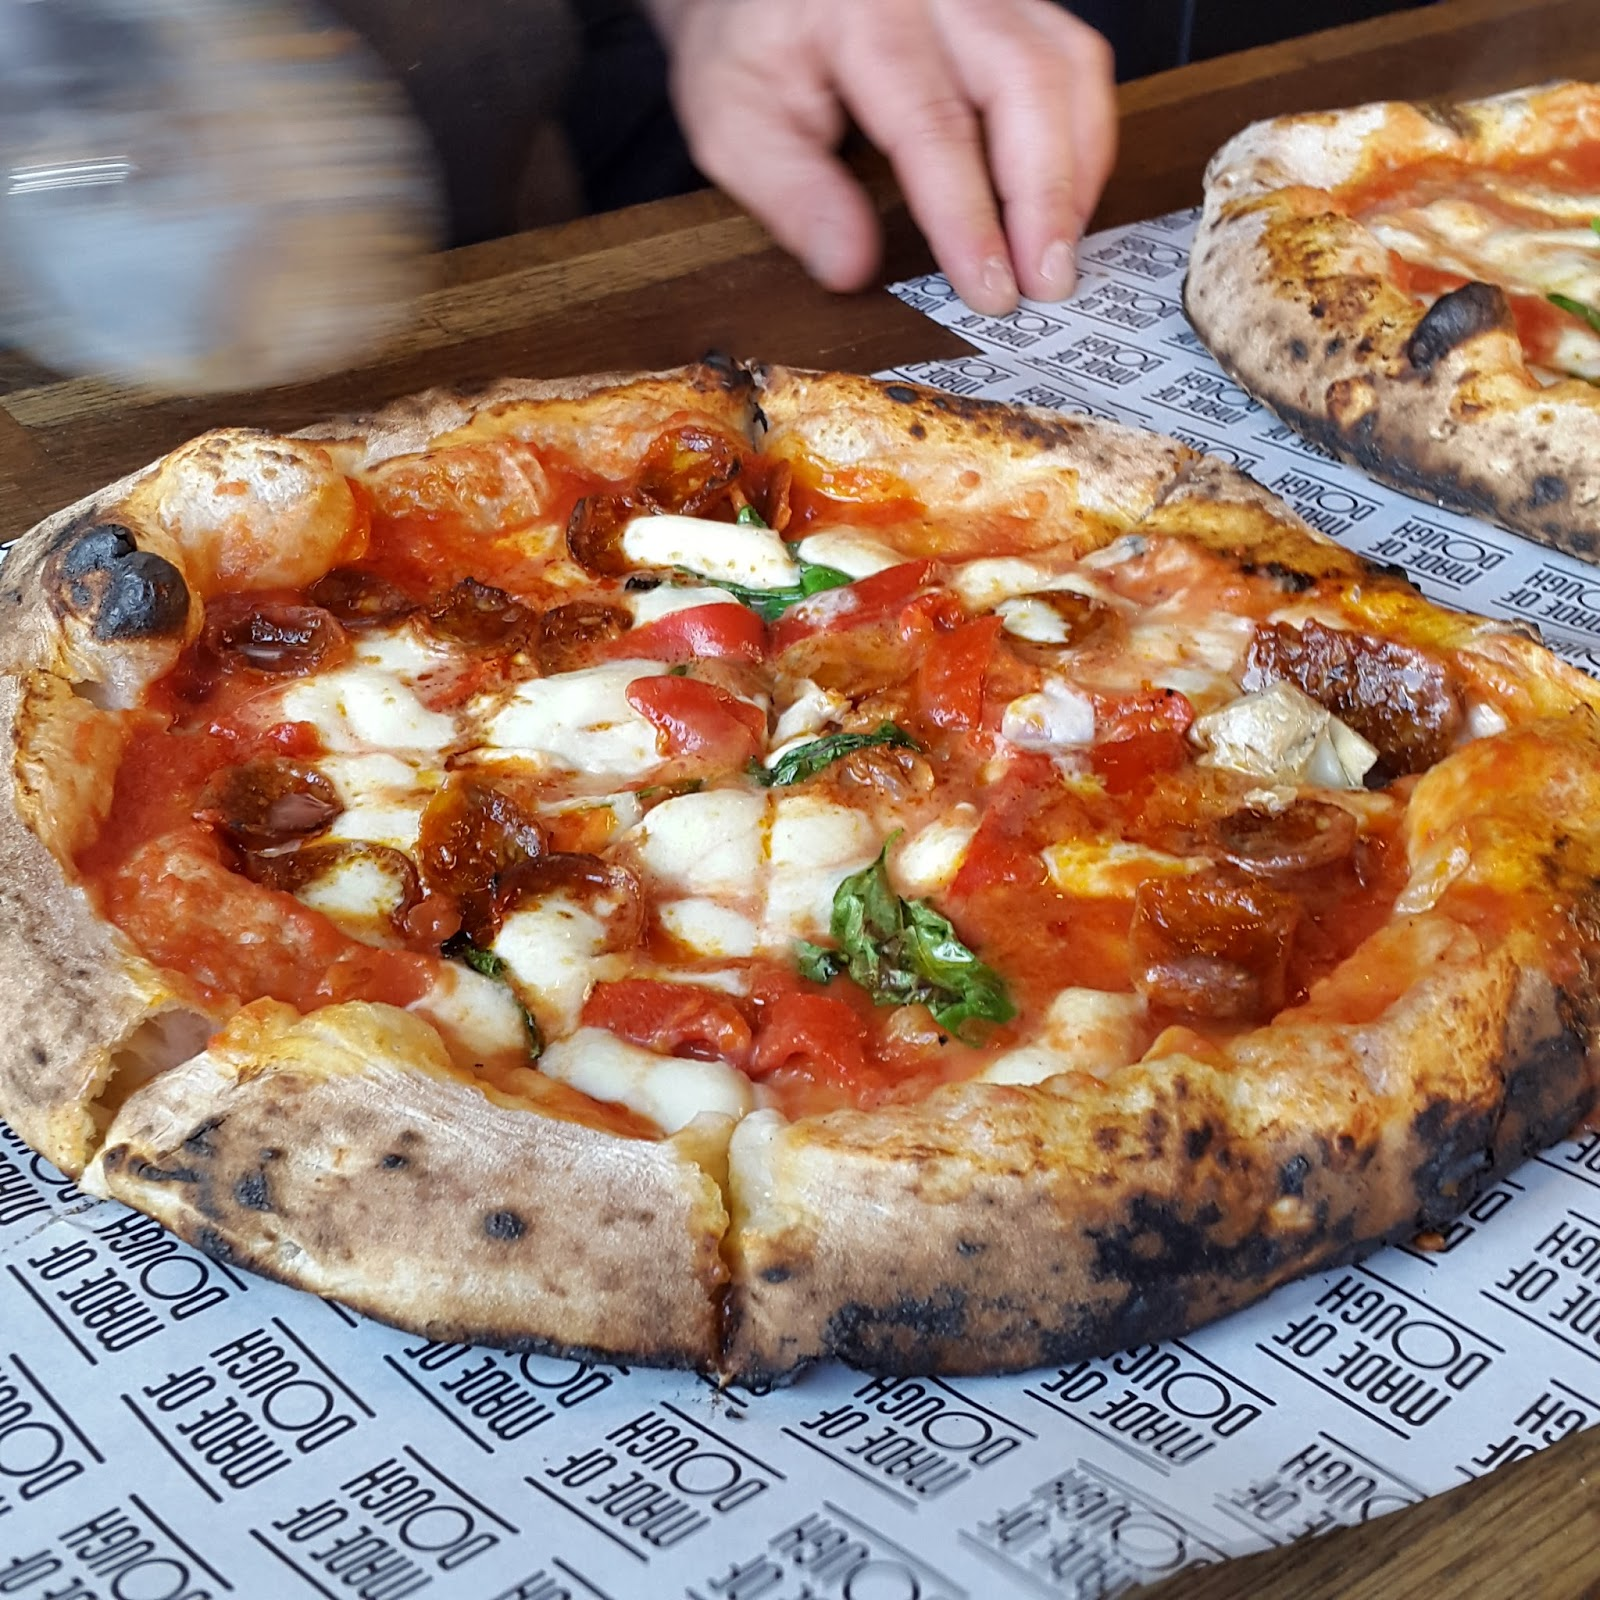 south-london-club-made-of-dough-pizza-2.jpg